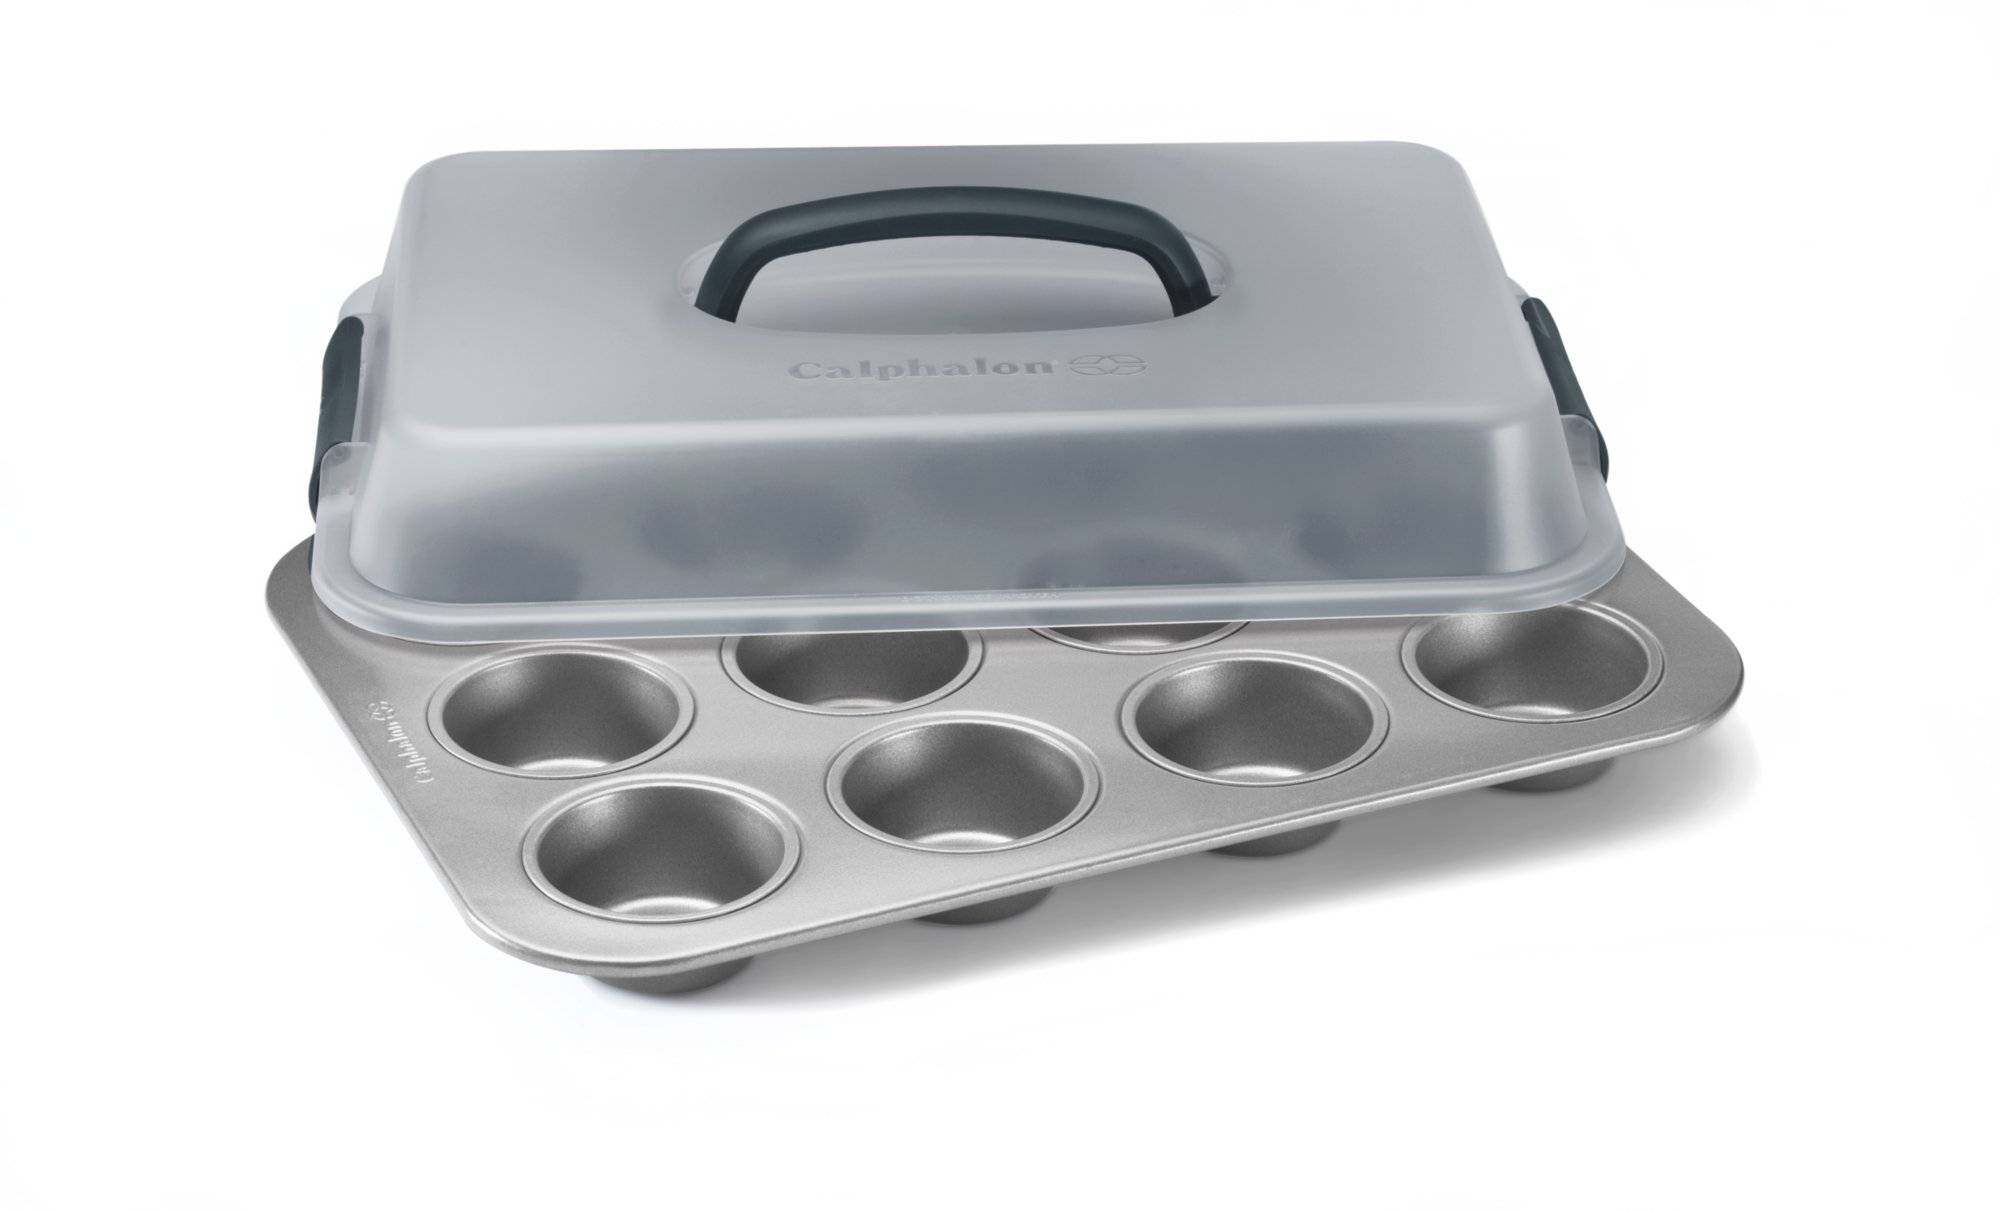 Calphalon Nonstick Bakeware 12 Cup Covered Cupcake Pan